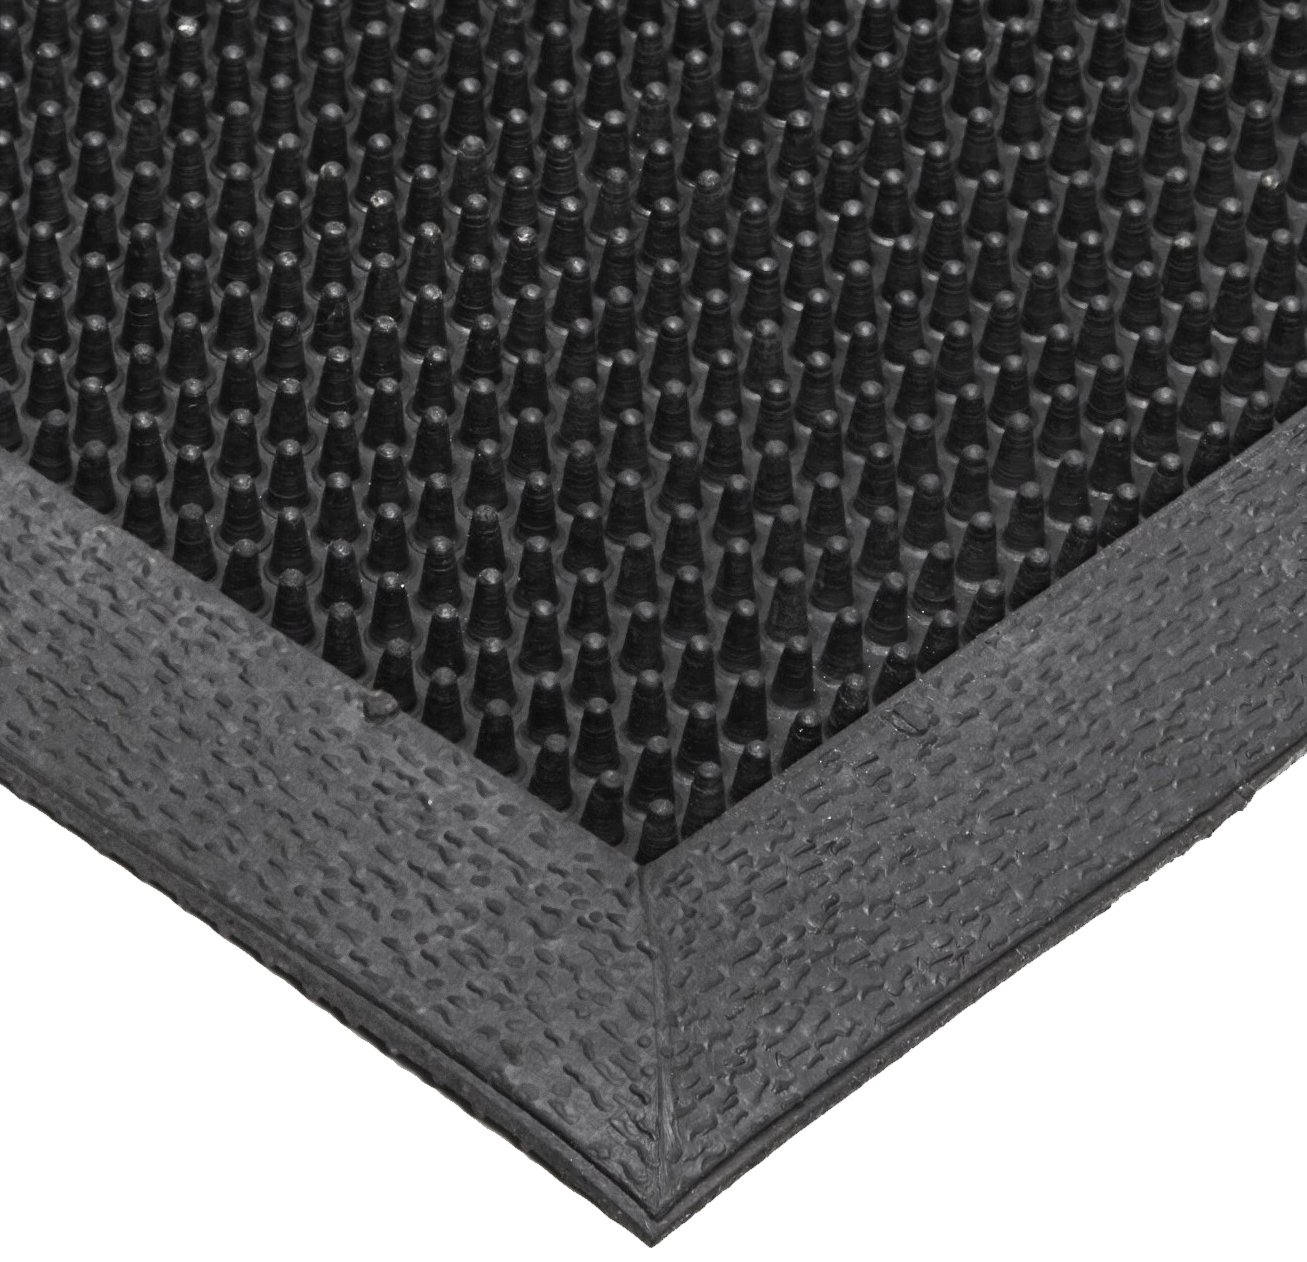 NoTrax T28 SBR Rubber Finger Scrape Entrance Mat, for Wet and Dry Areas, 36'' Width x 72'' Length x 3/8'' Thickness, Black